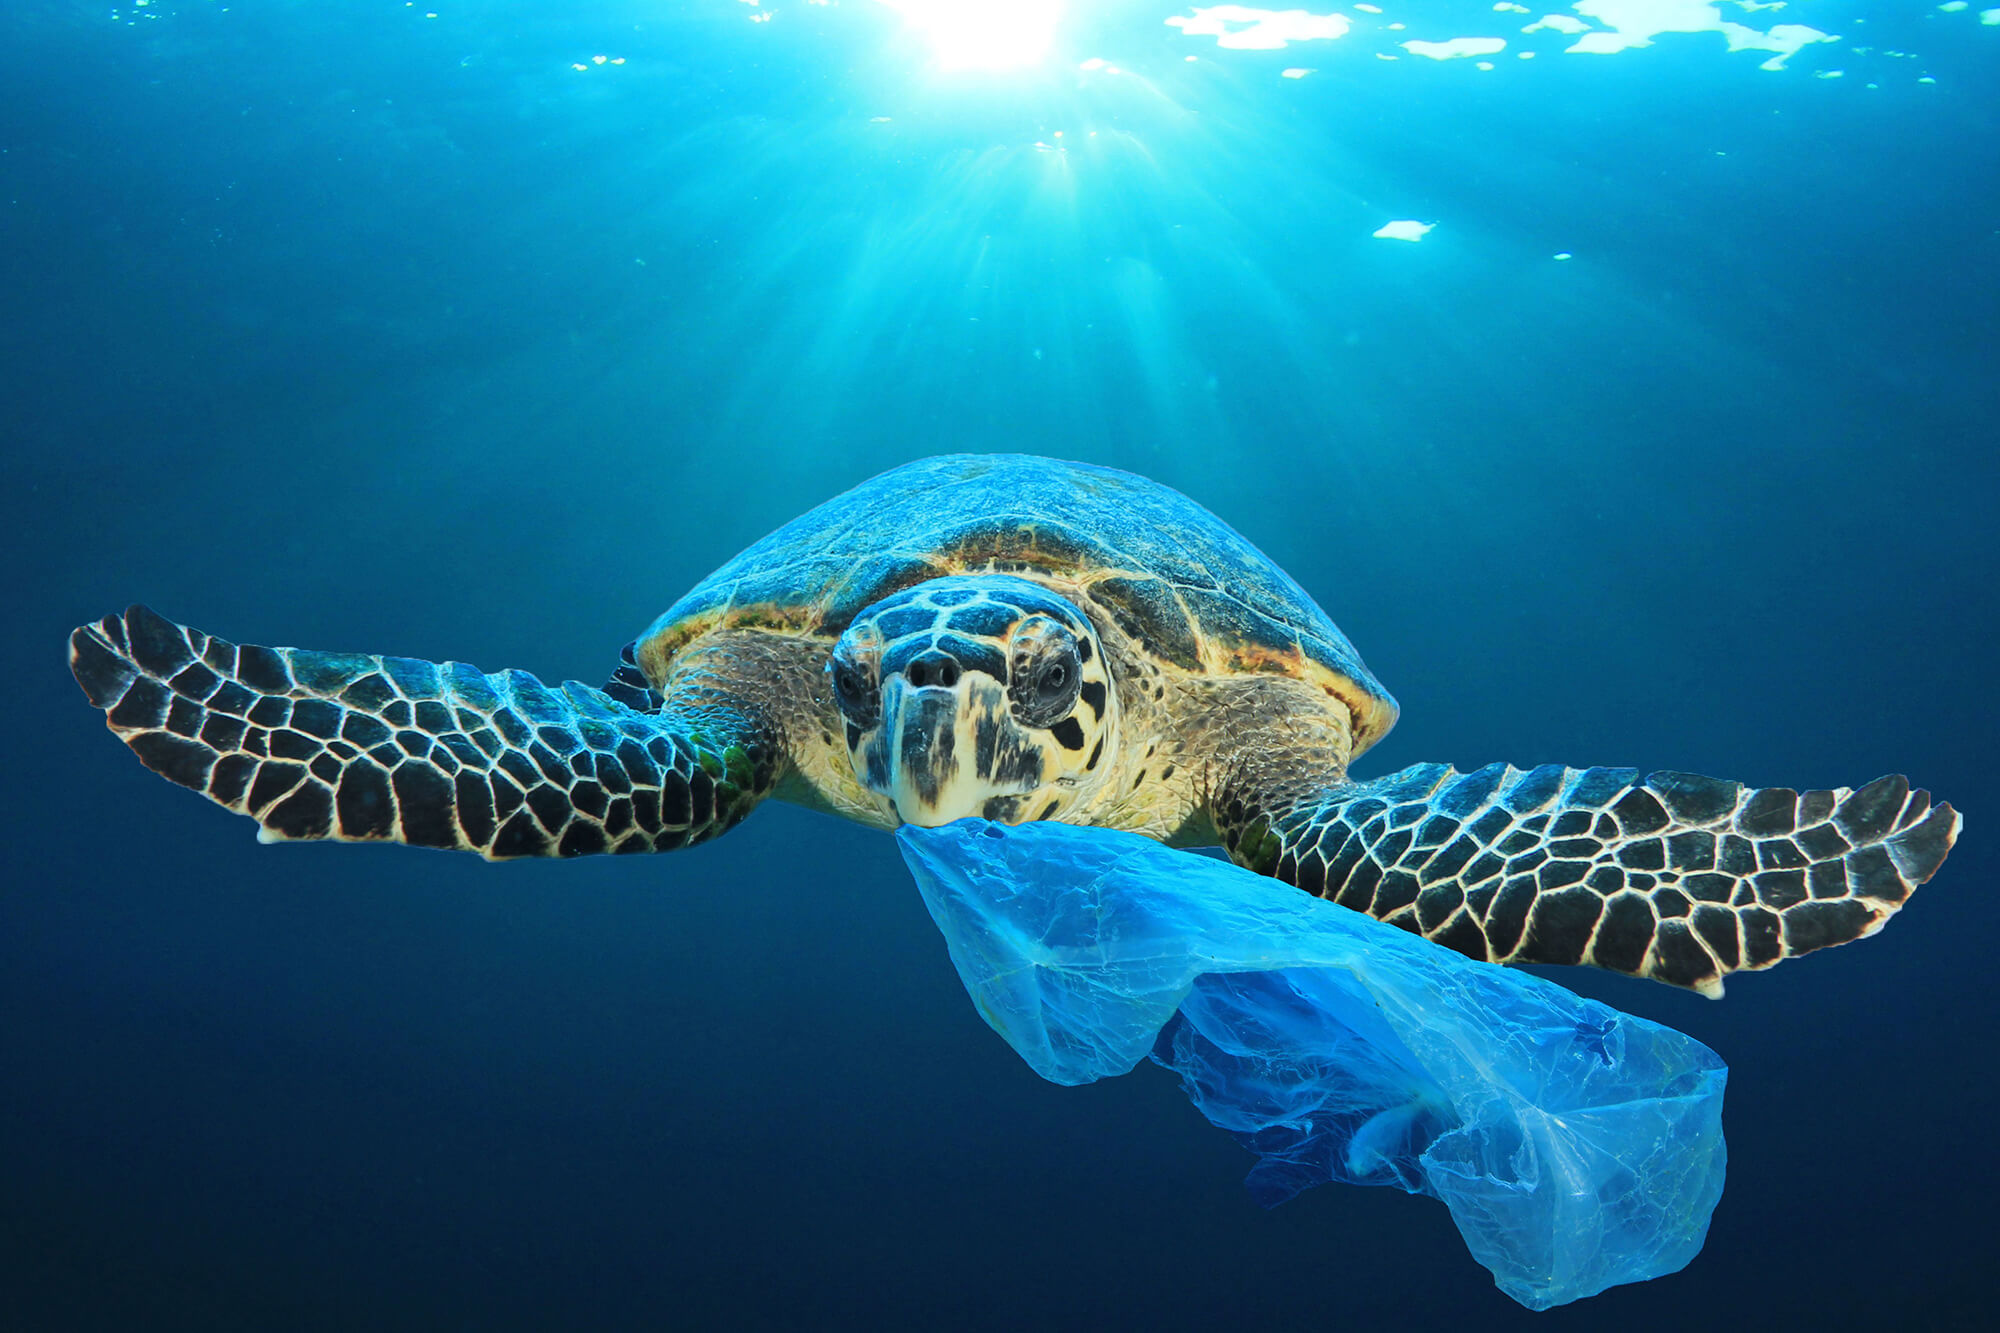 20 years - Plastic bags can take up to 20 years to decompose.